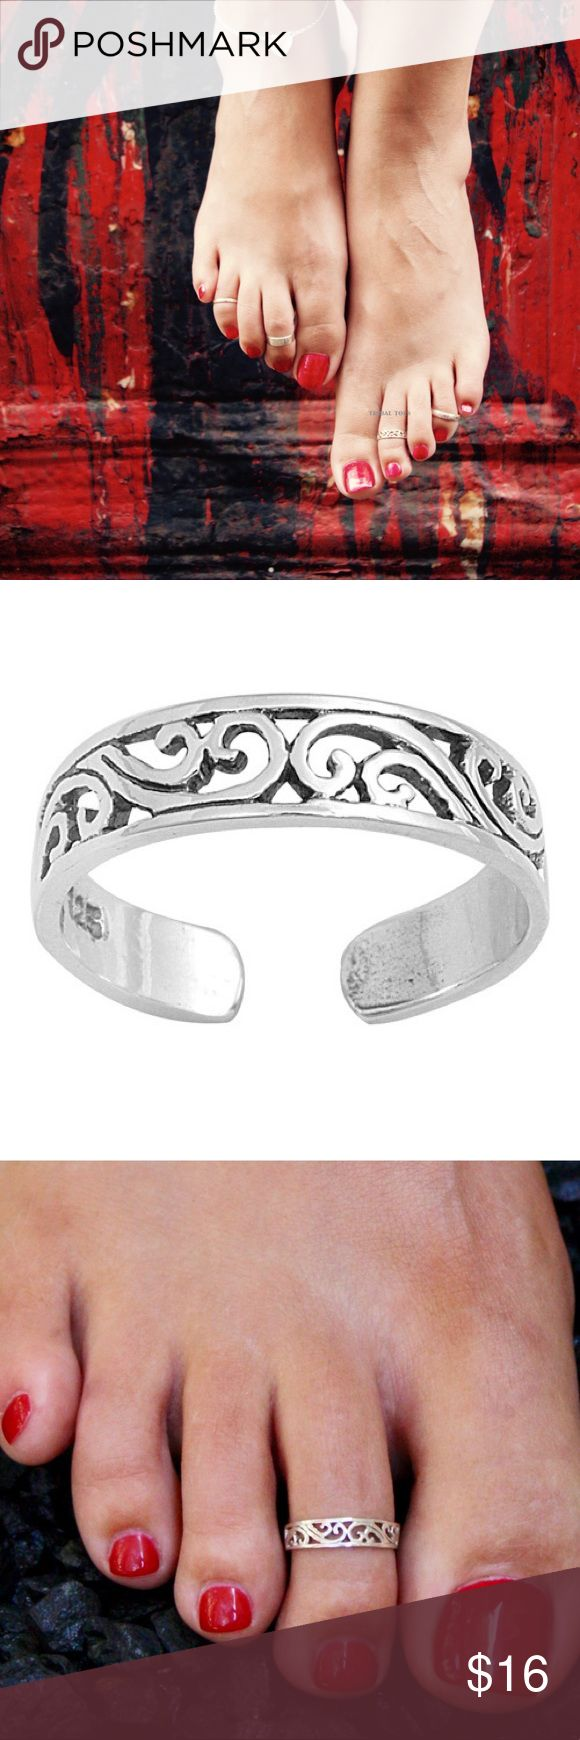 Sterling Silver Toe Ring - Filigree 925 Sterling Silver. New. Adjustable - one size fits all. Face is 4mm. Bundle and save 15%. Sexy feet need bling too! Purchase is for one ring.  stamped Jewelry Rings